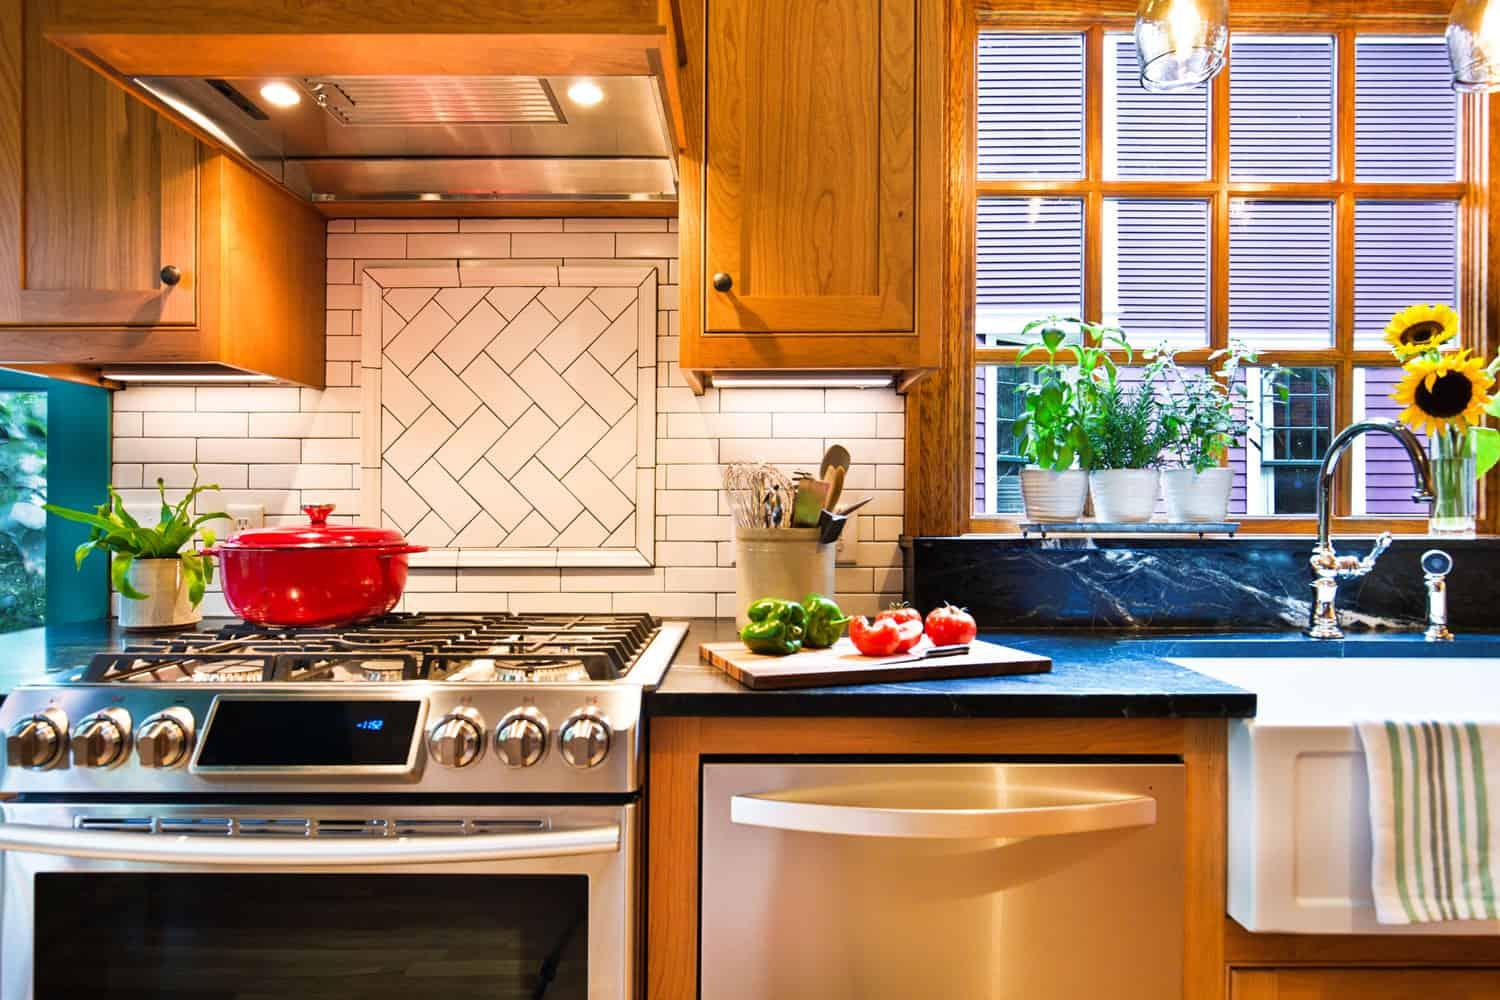 A contemporary classic kitchen renovation remodeling featuring a classic wood maple kitchen cabinet and black granite countertop